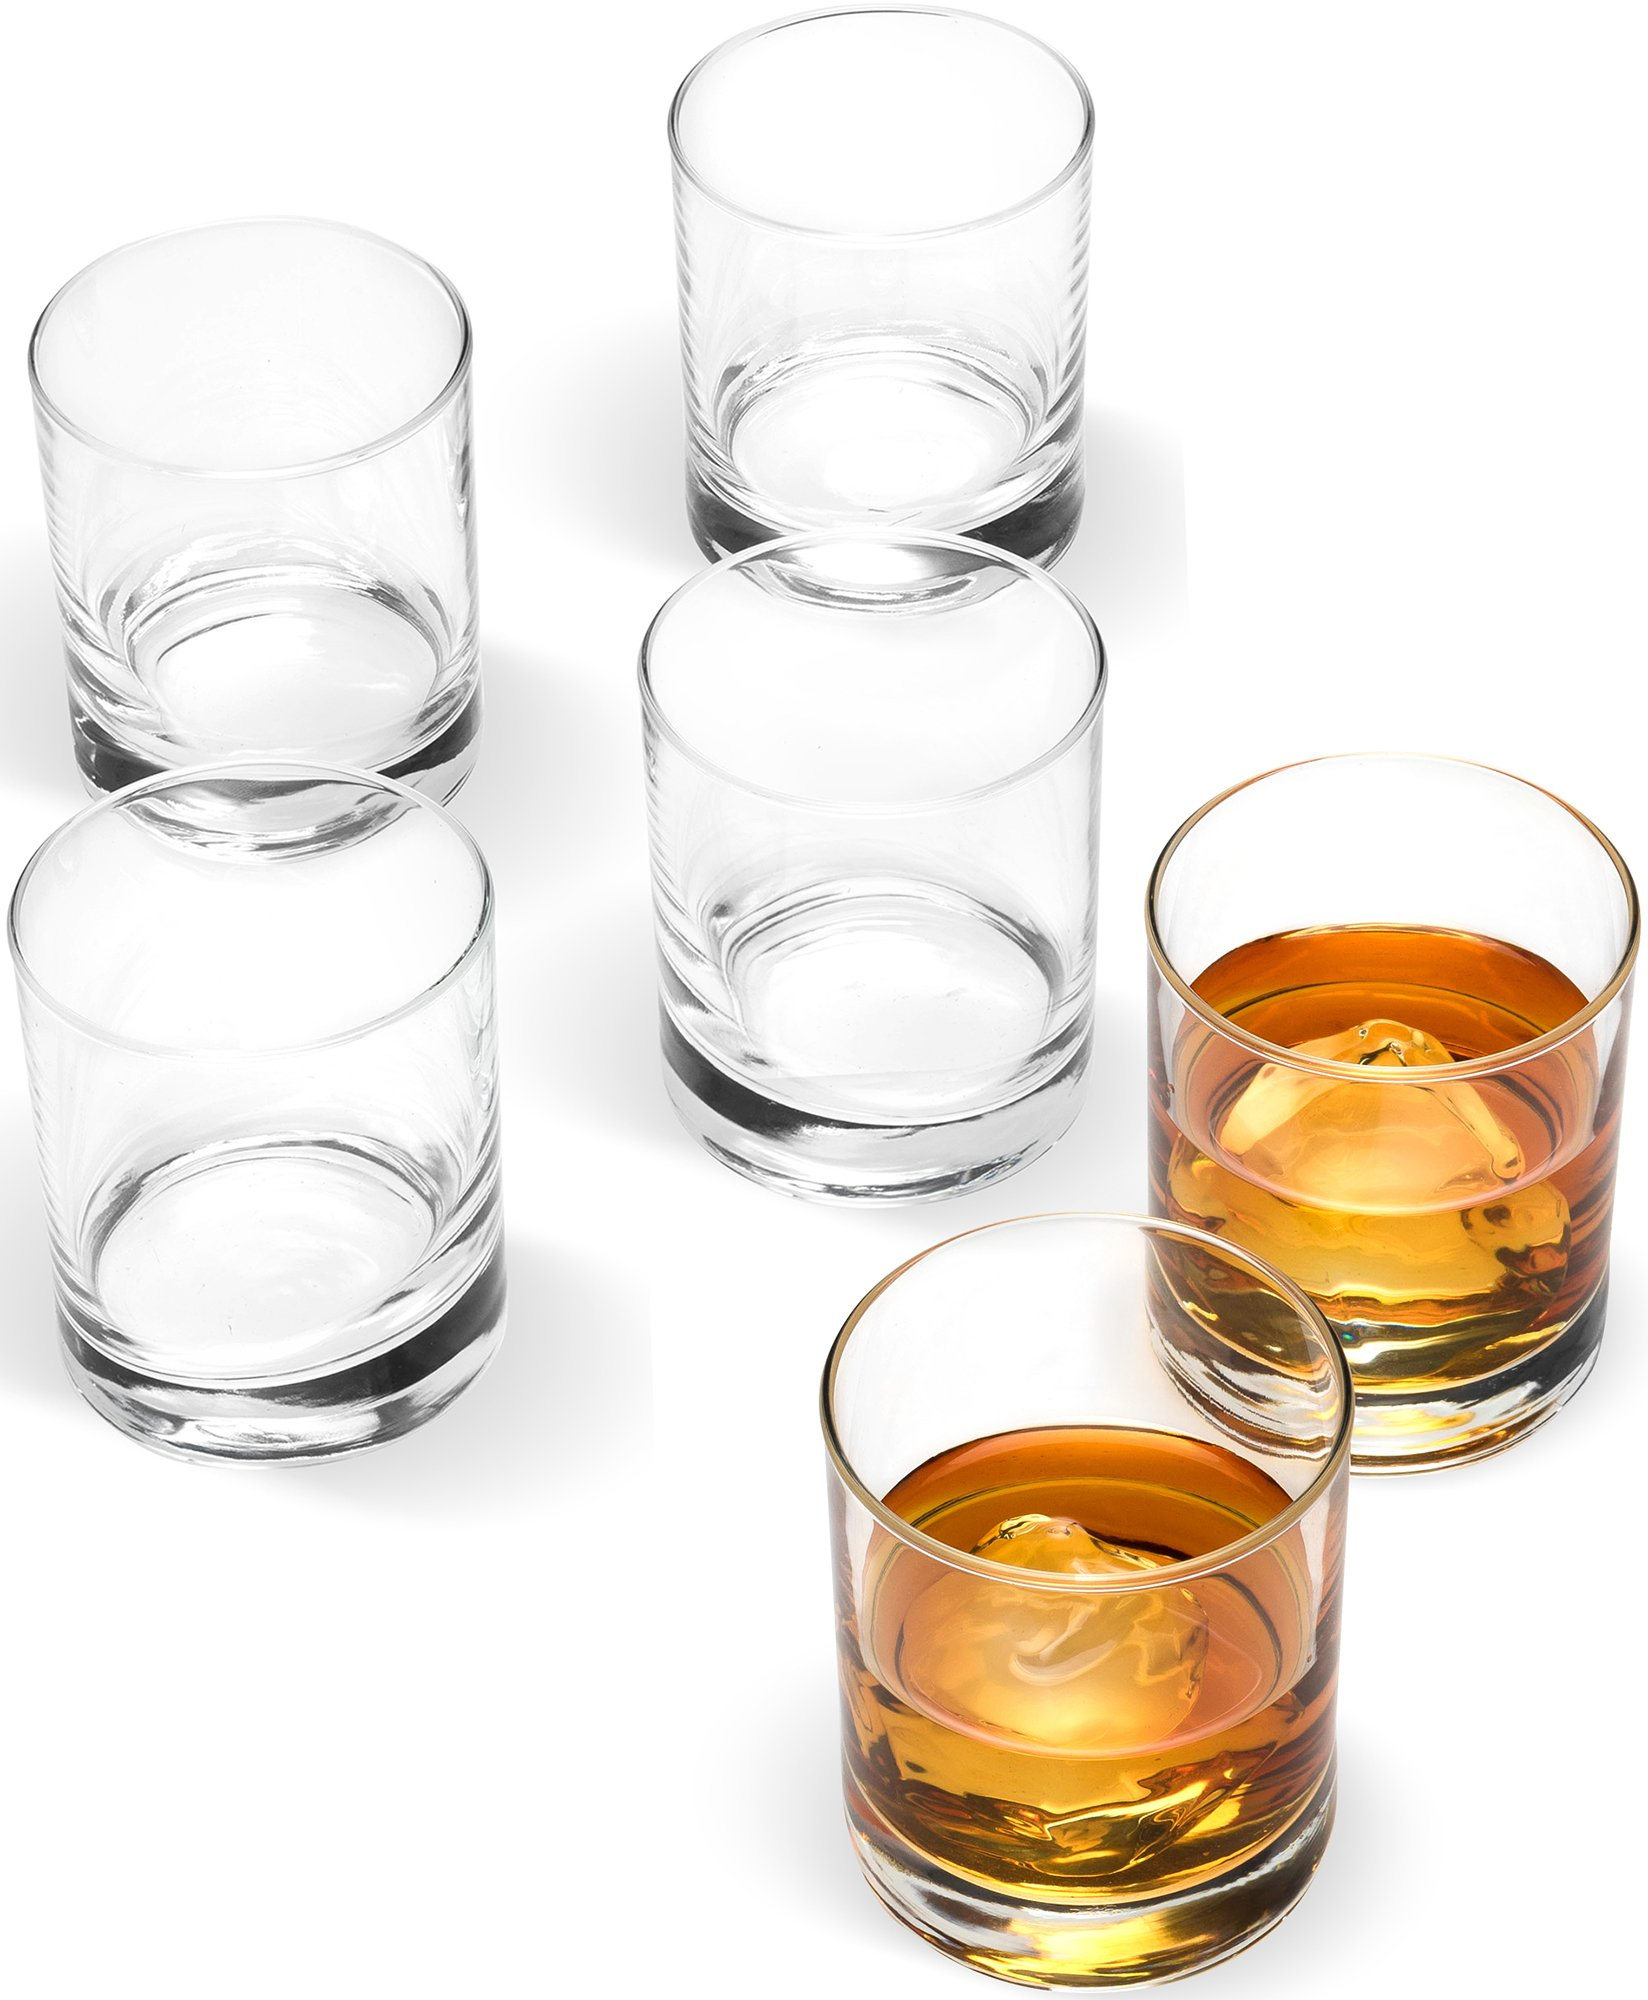 Bormioli Rocco Small 2 ¾'' x 3'' Italian Weighted Bottom Old Fashioned Whiskey Glasses for Wine, Scotch, Cocktails, Juice, and Water - [6 Piece Set] 6 ½ Ounce by Bormioli Rocco